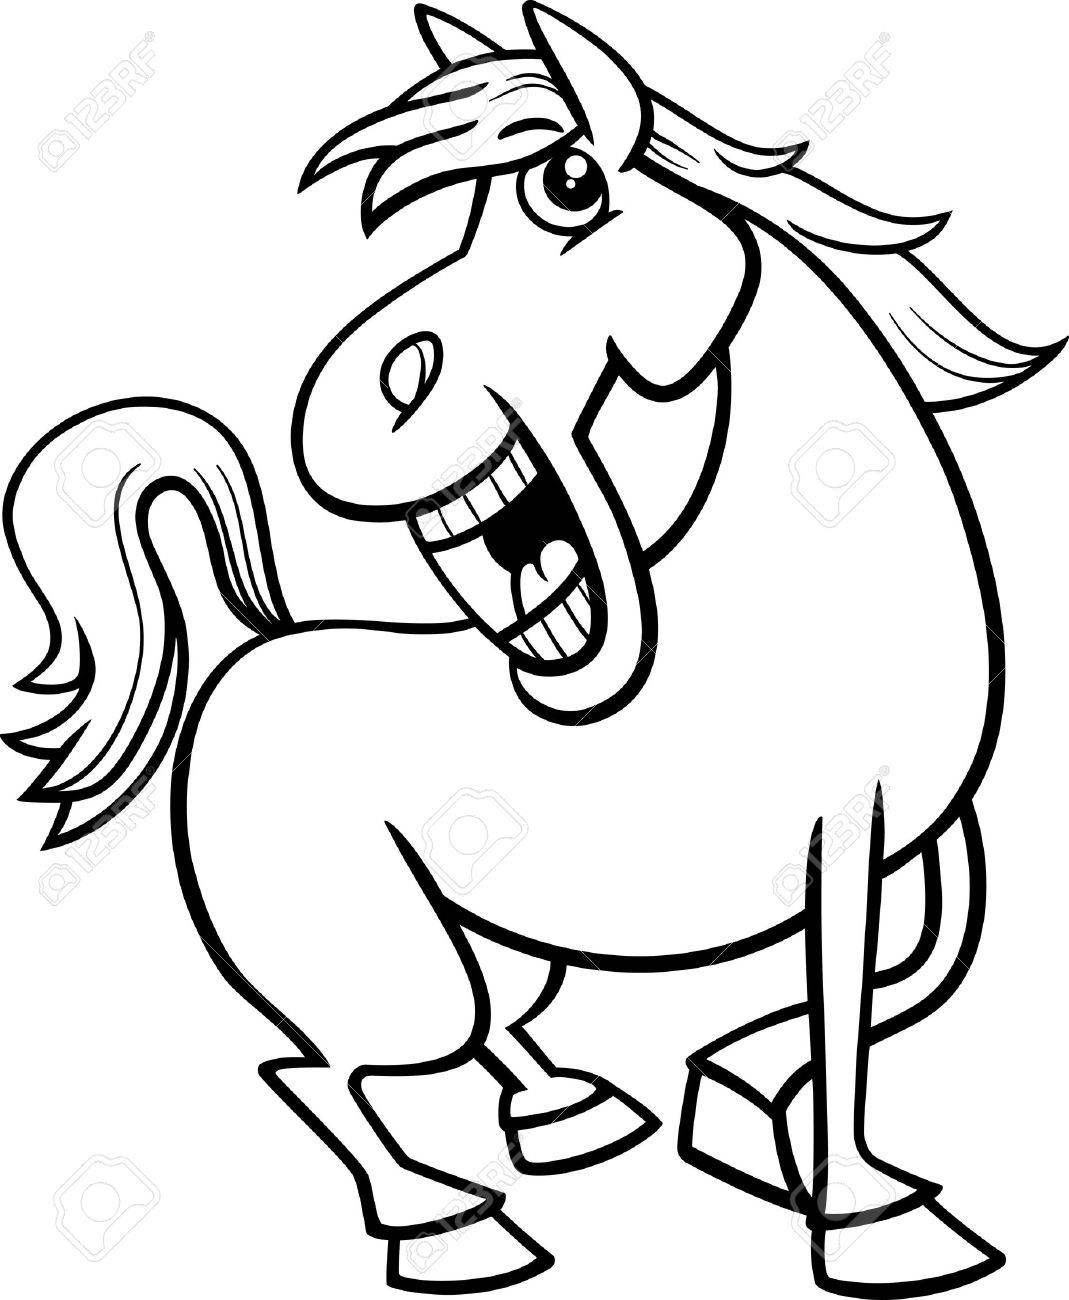 Black And White Cartoon Illustration Of Funny Horse Farm Animal Royalty Free Cliparts Vectors And Stock Illustration Image 43976864